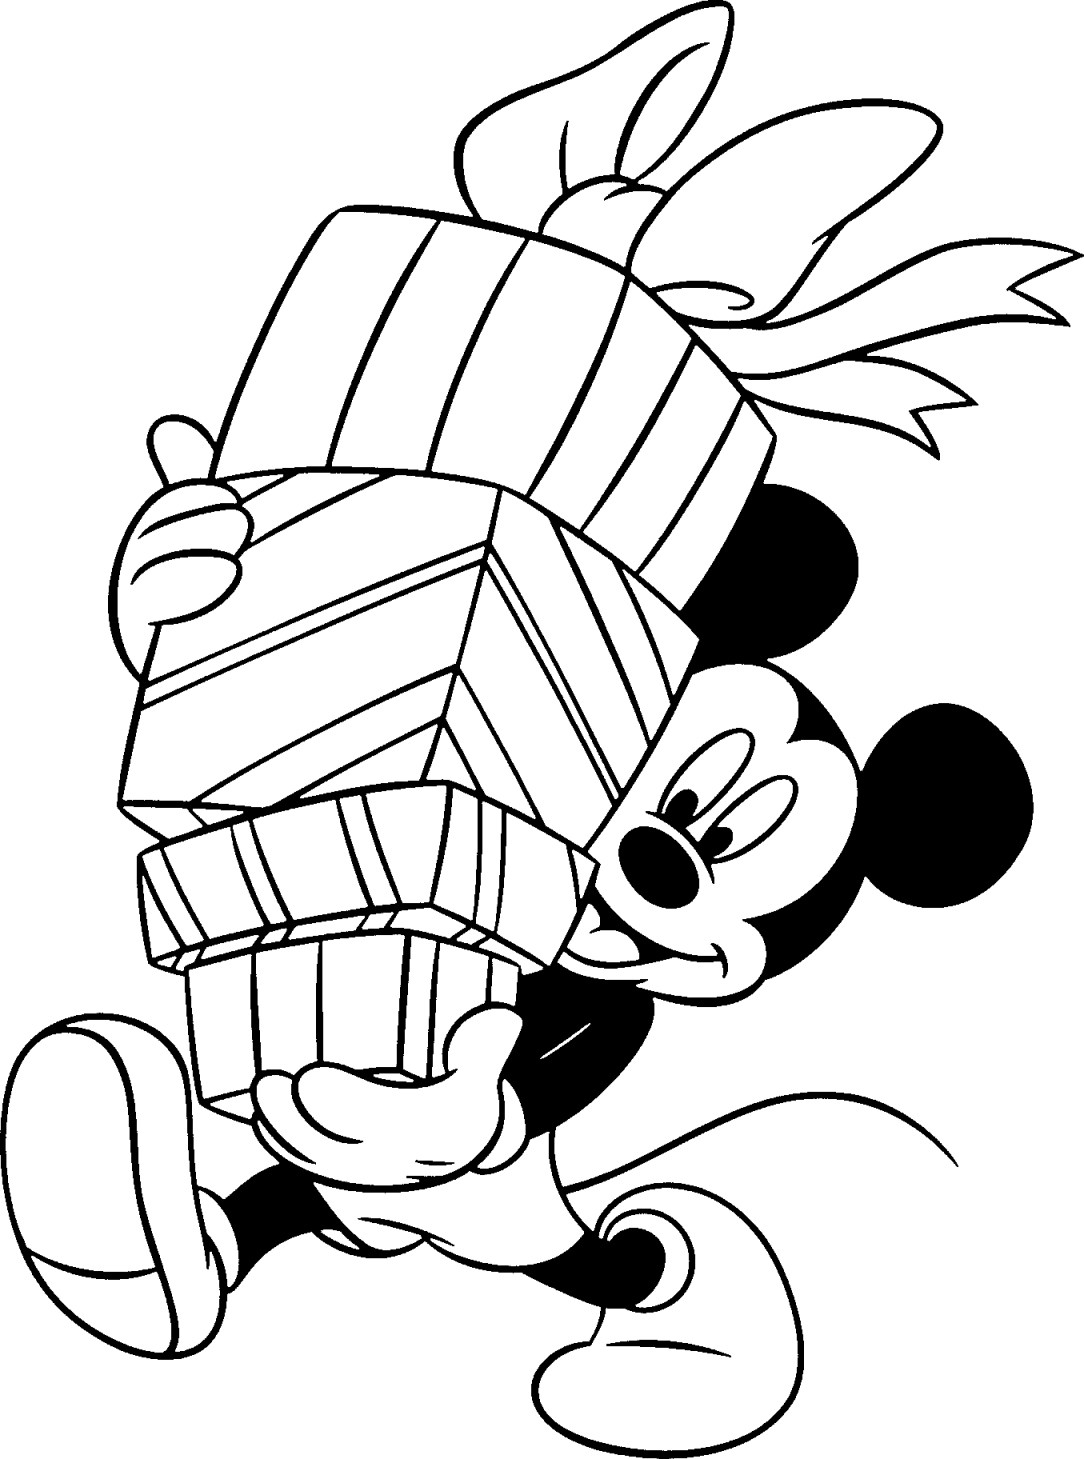 Free disney christmas printable coloring pages for kids